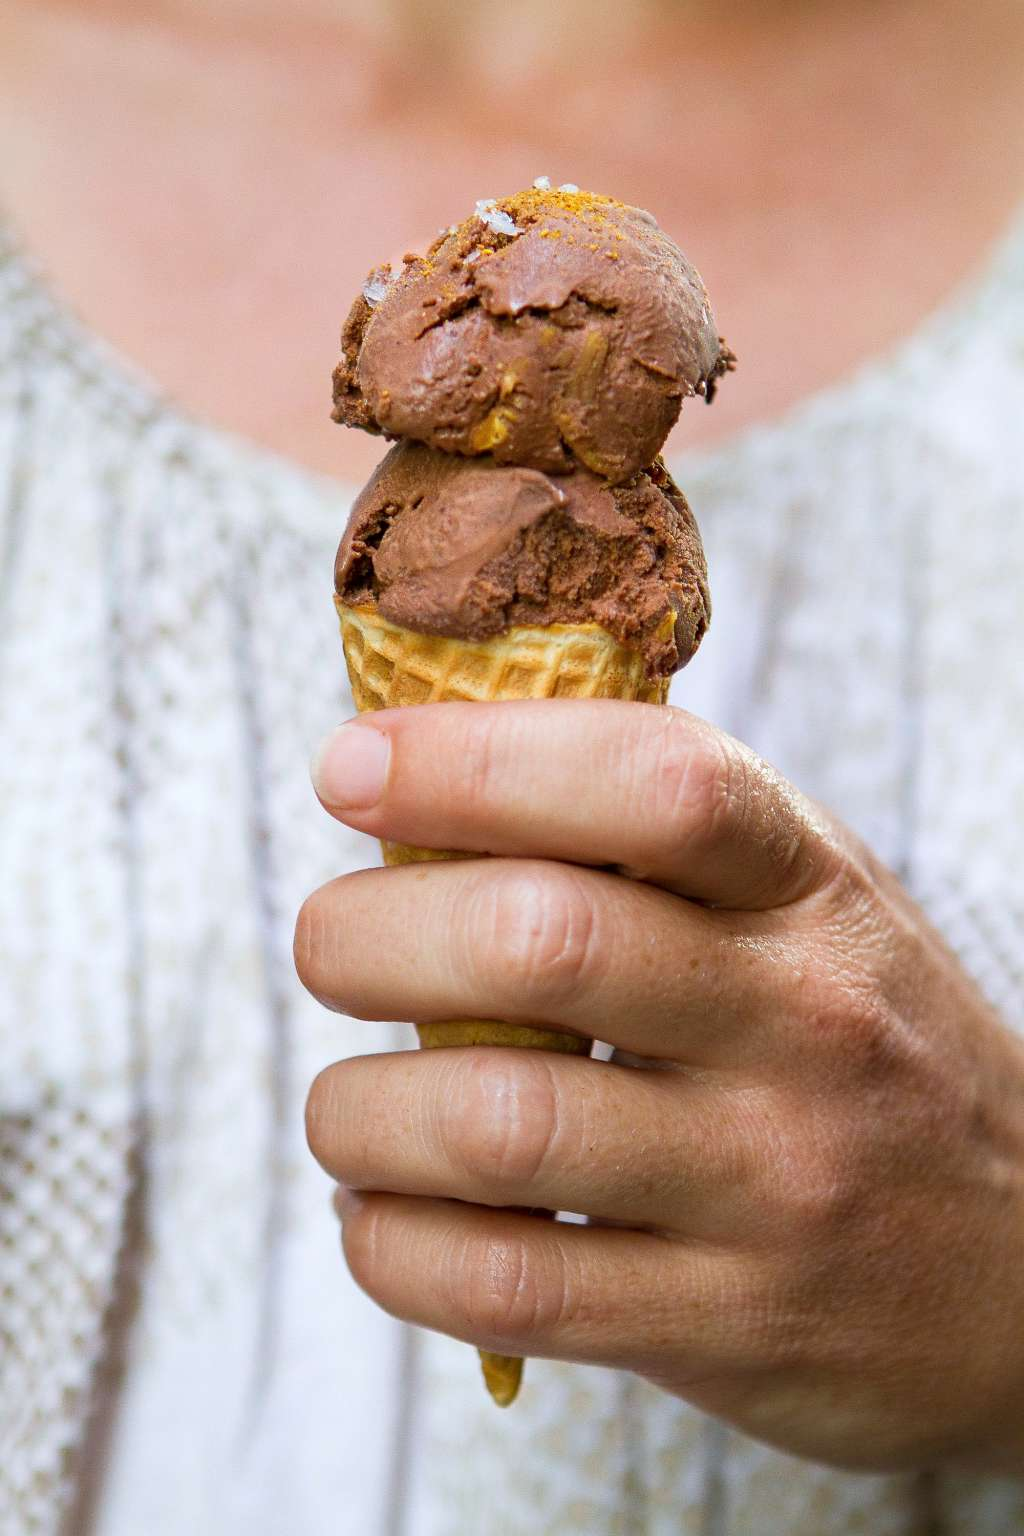 Recipe: Mexican Chocolate and Almond Ice Cream